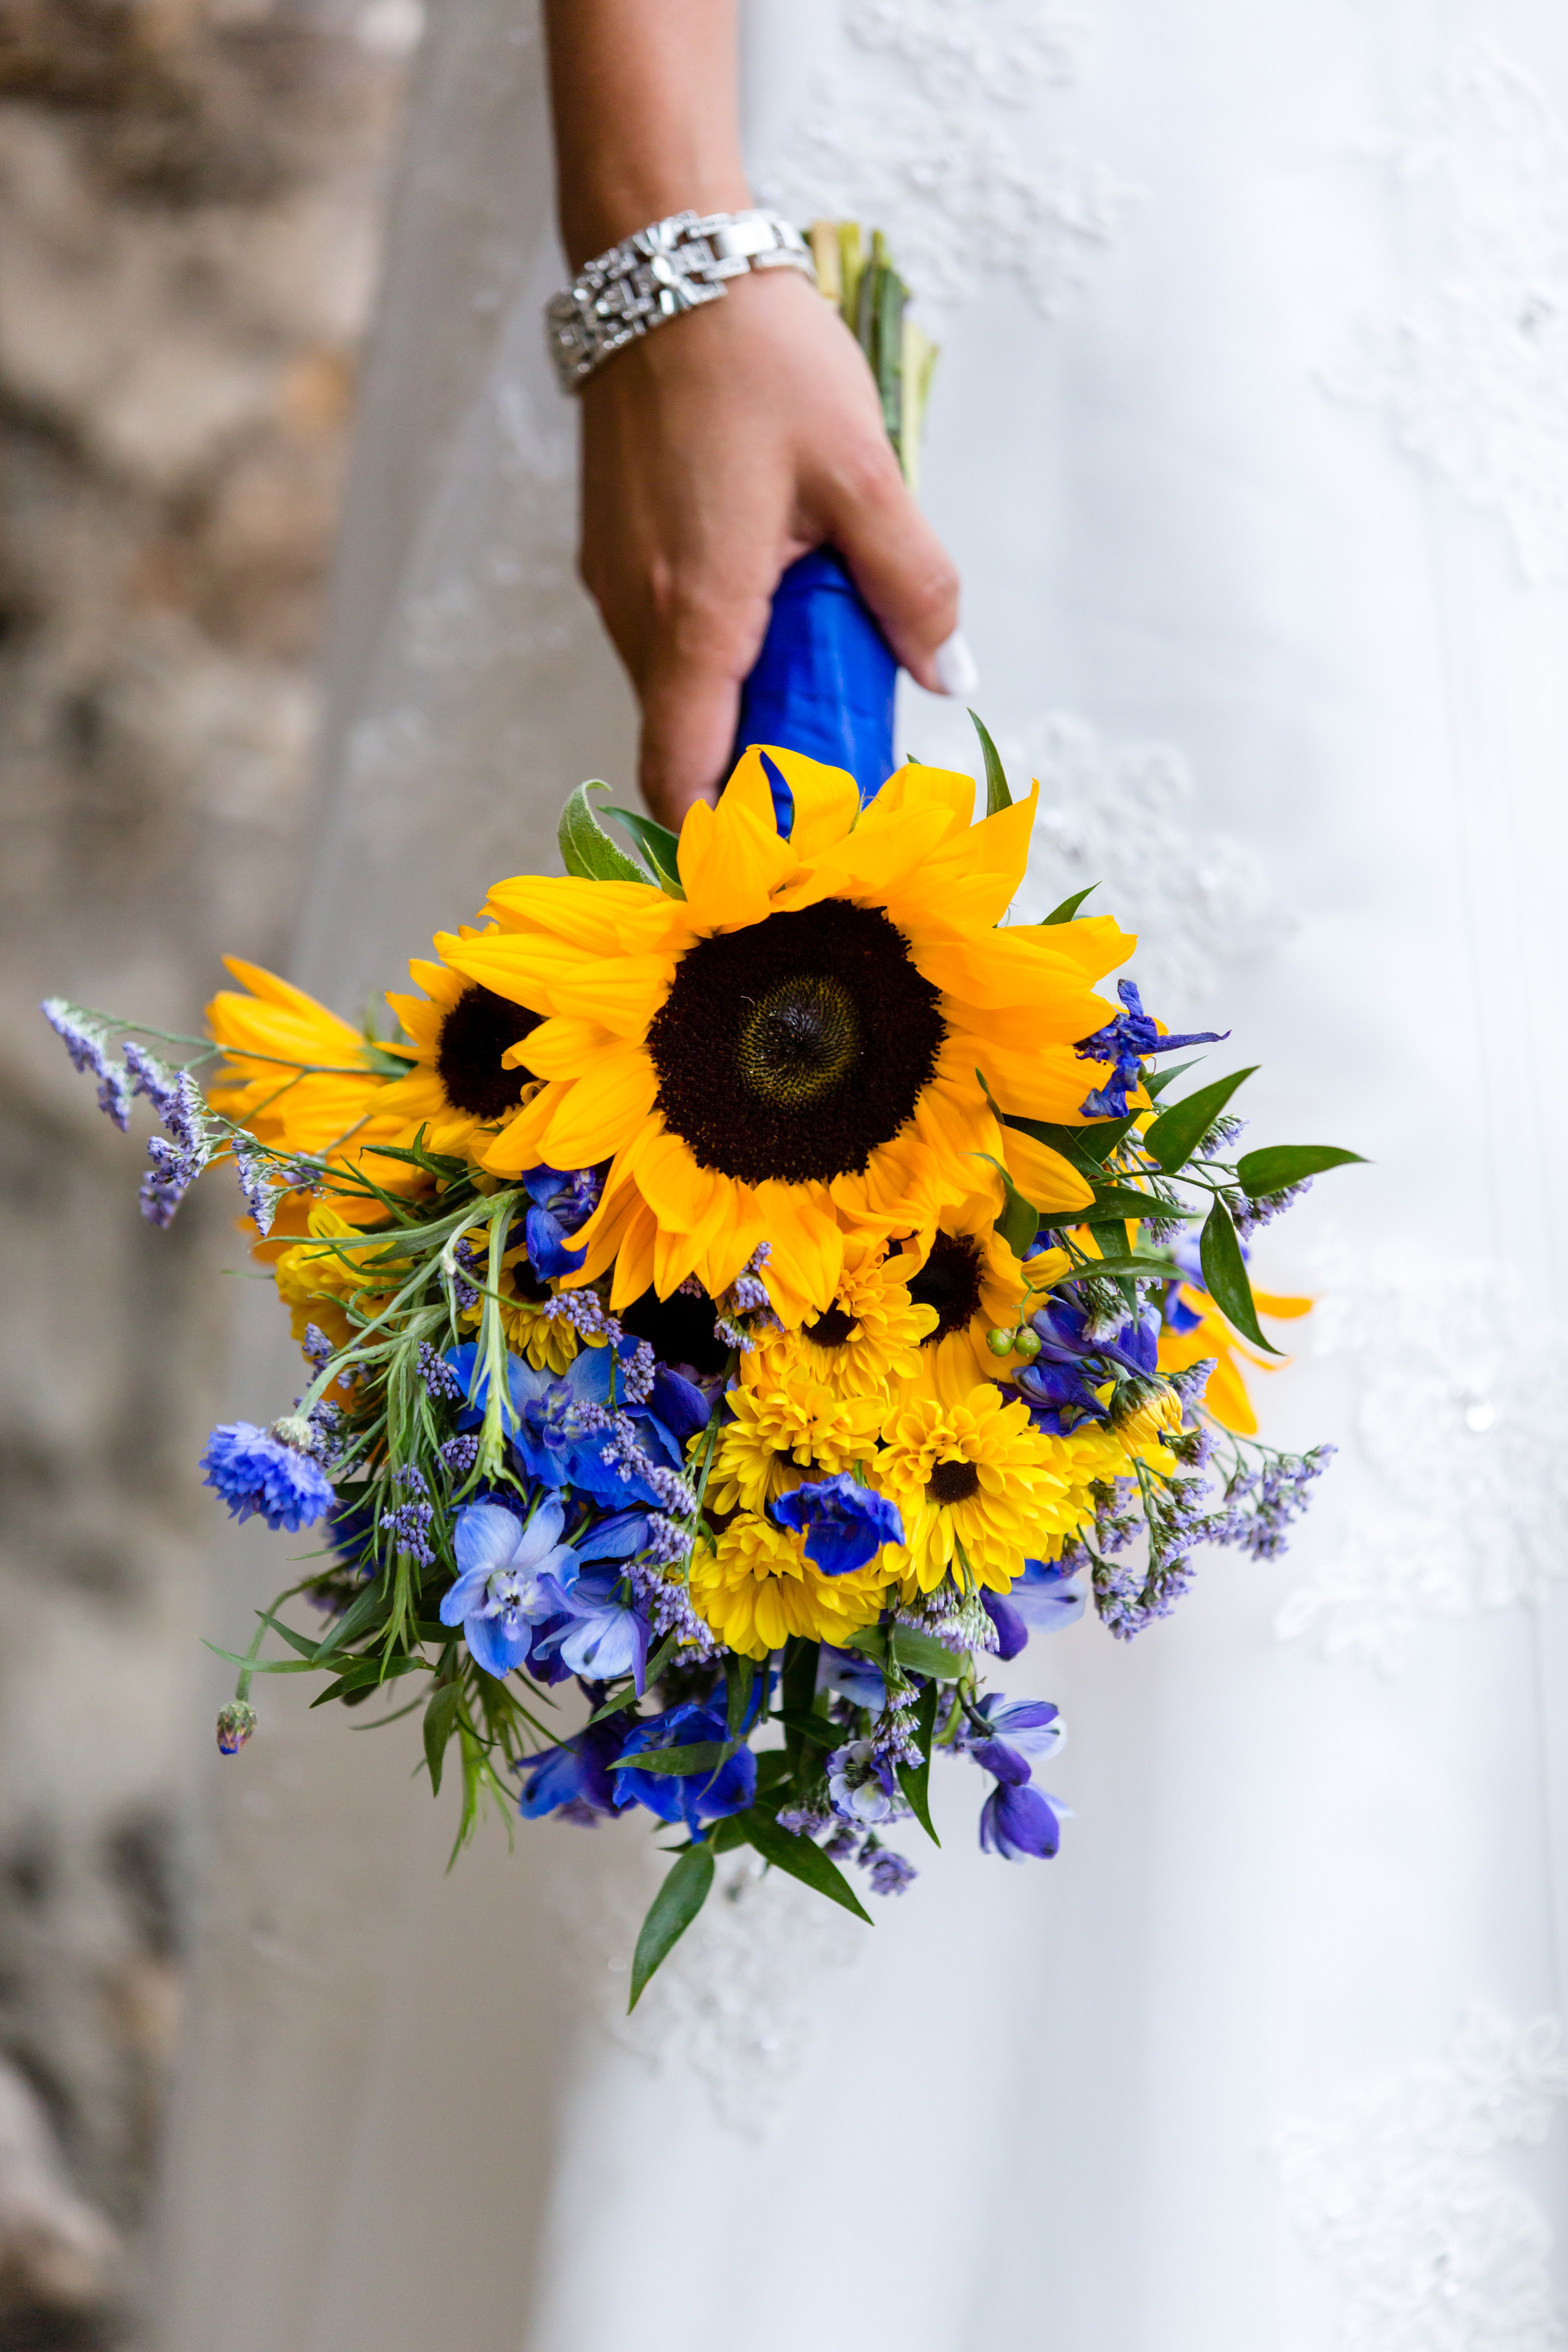 Sunflowers with blue